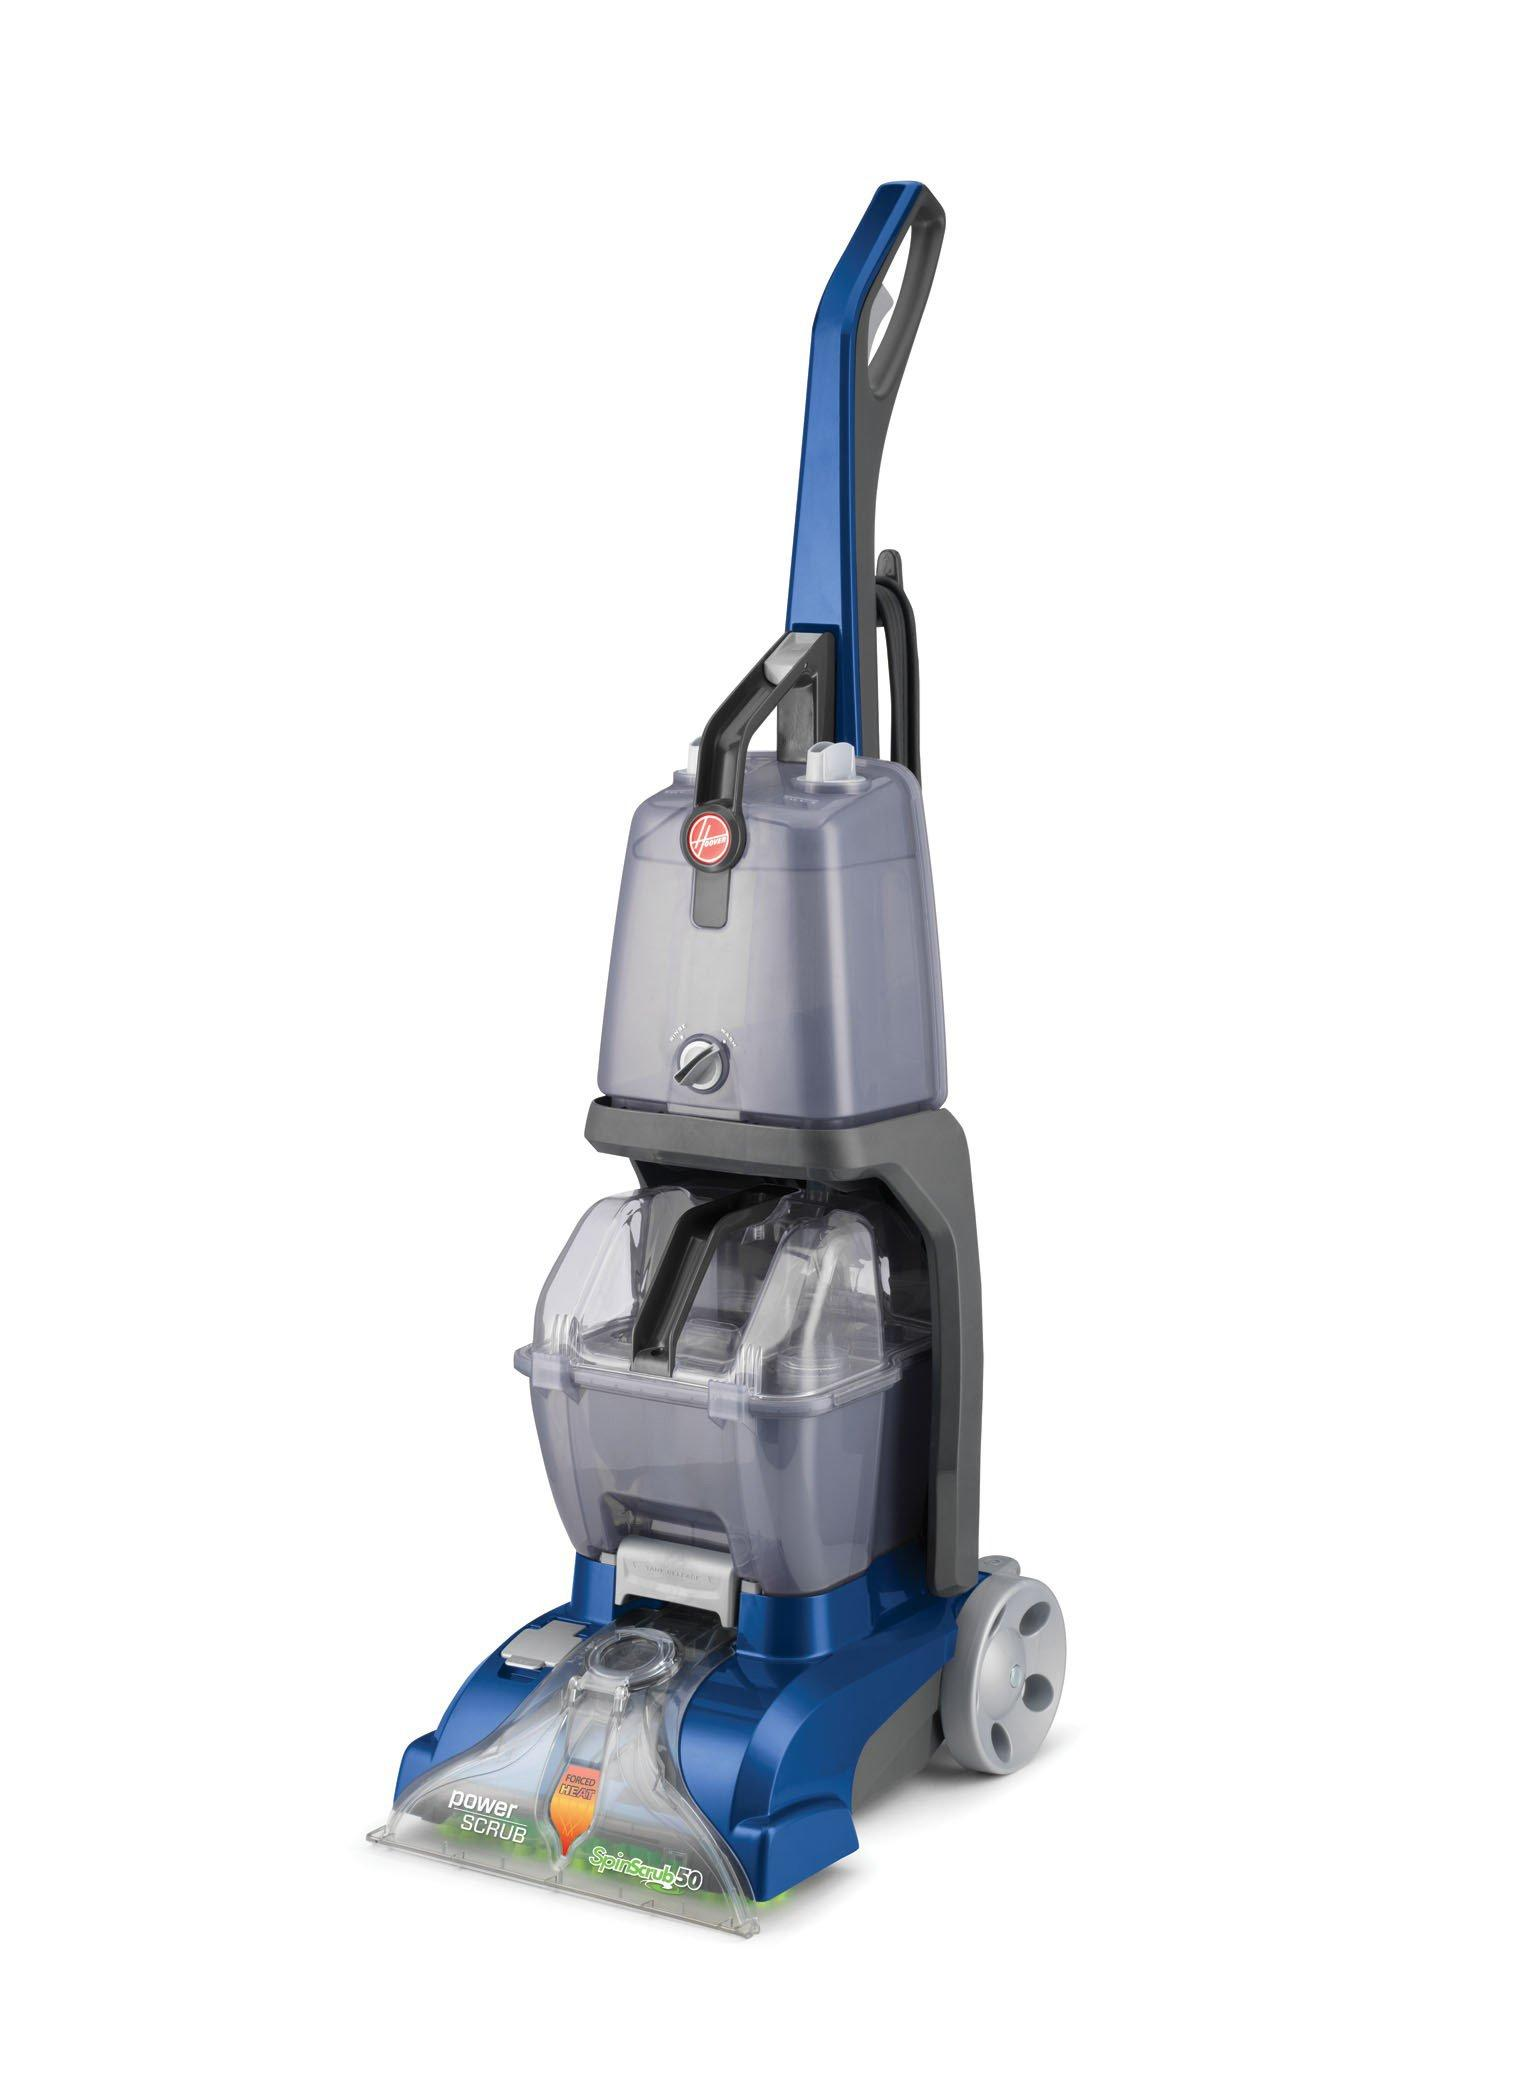 Reconditioned Power Scrub Carpet Cleaner2